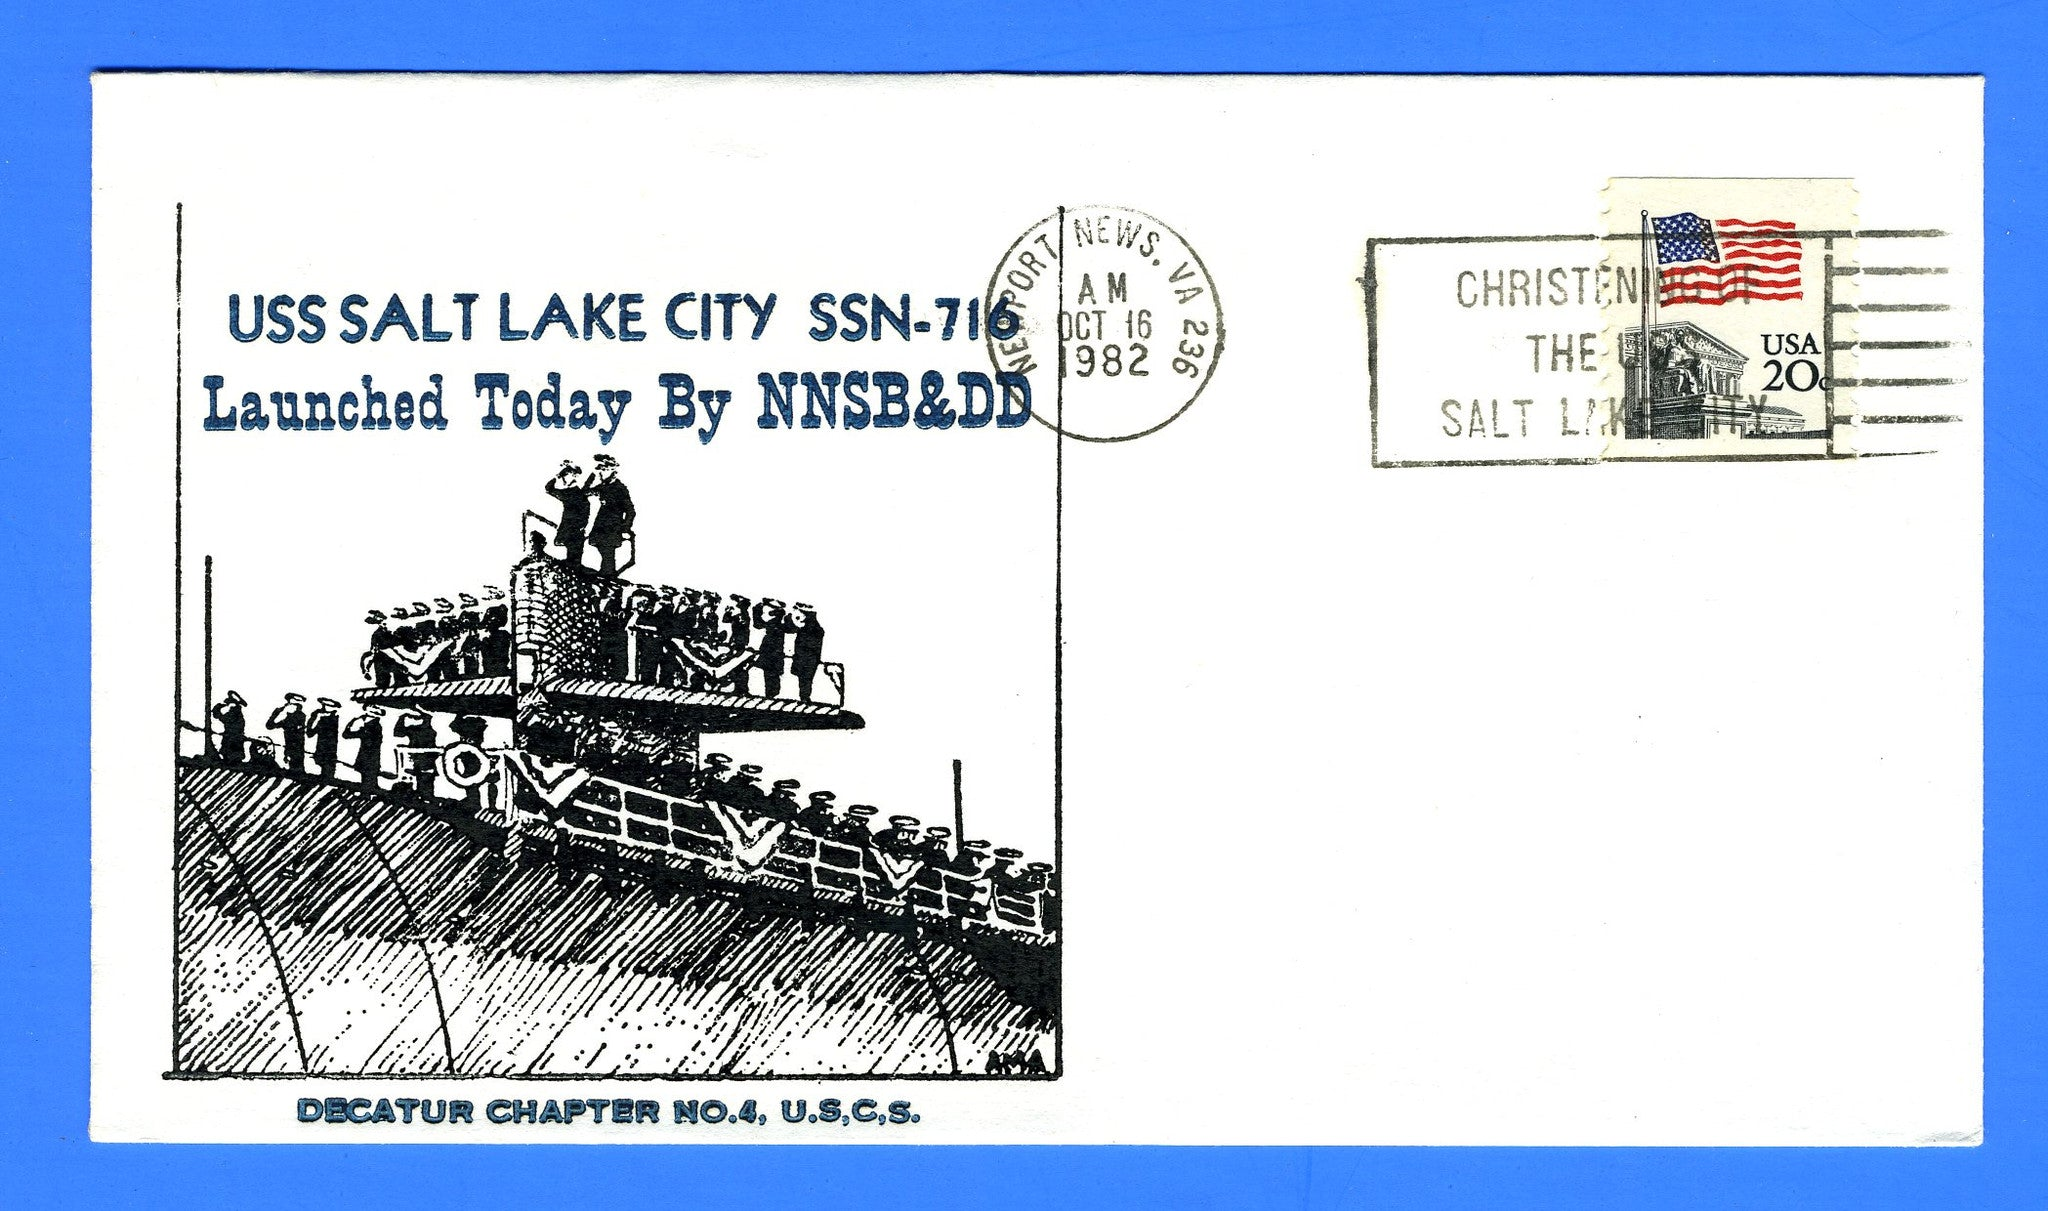 USS Salt Lake City SSN-716 October 16, 1982 - Cachet by Stephen Decatur Chapter No. 4, USCS